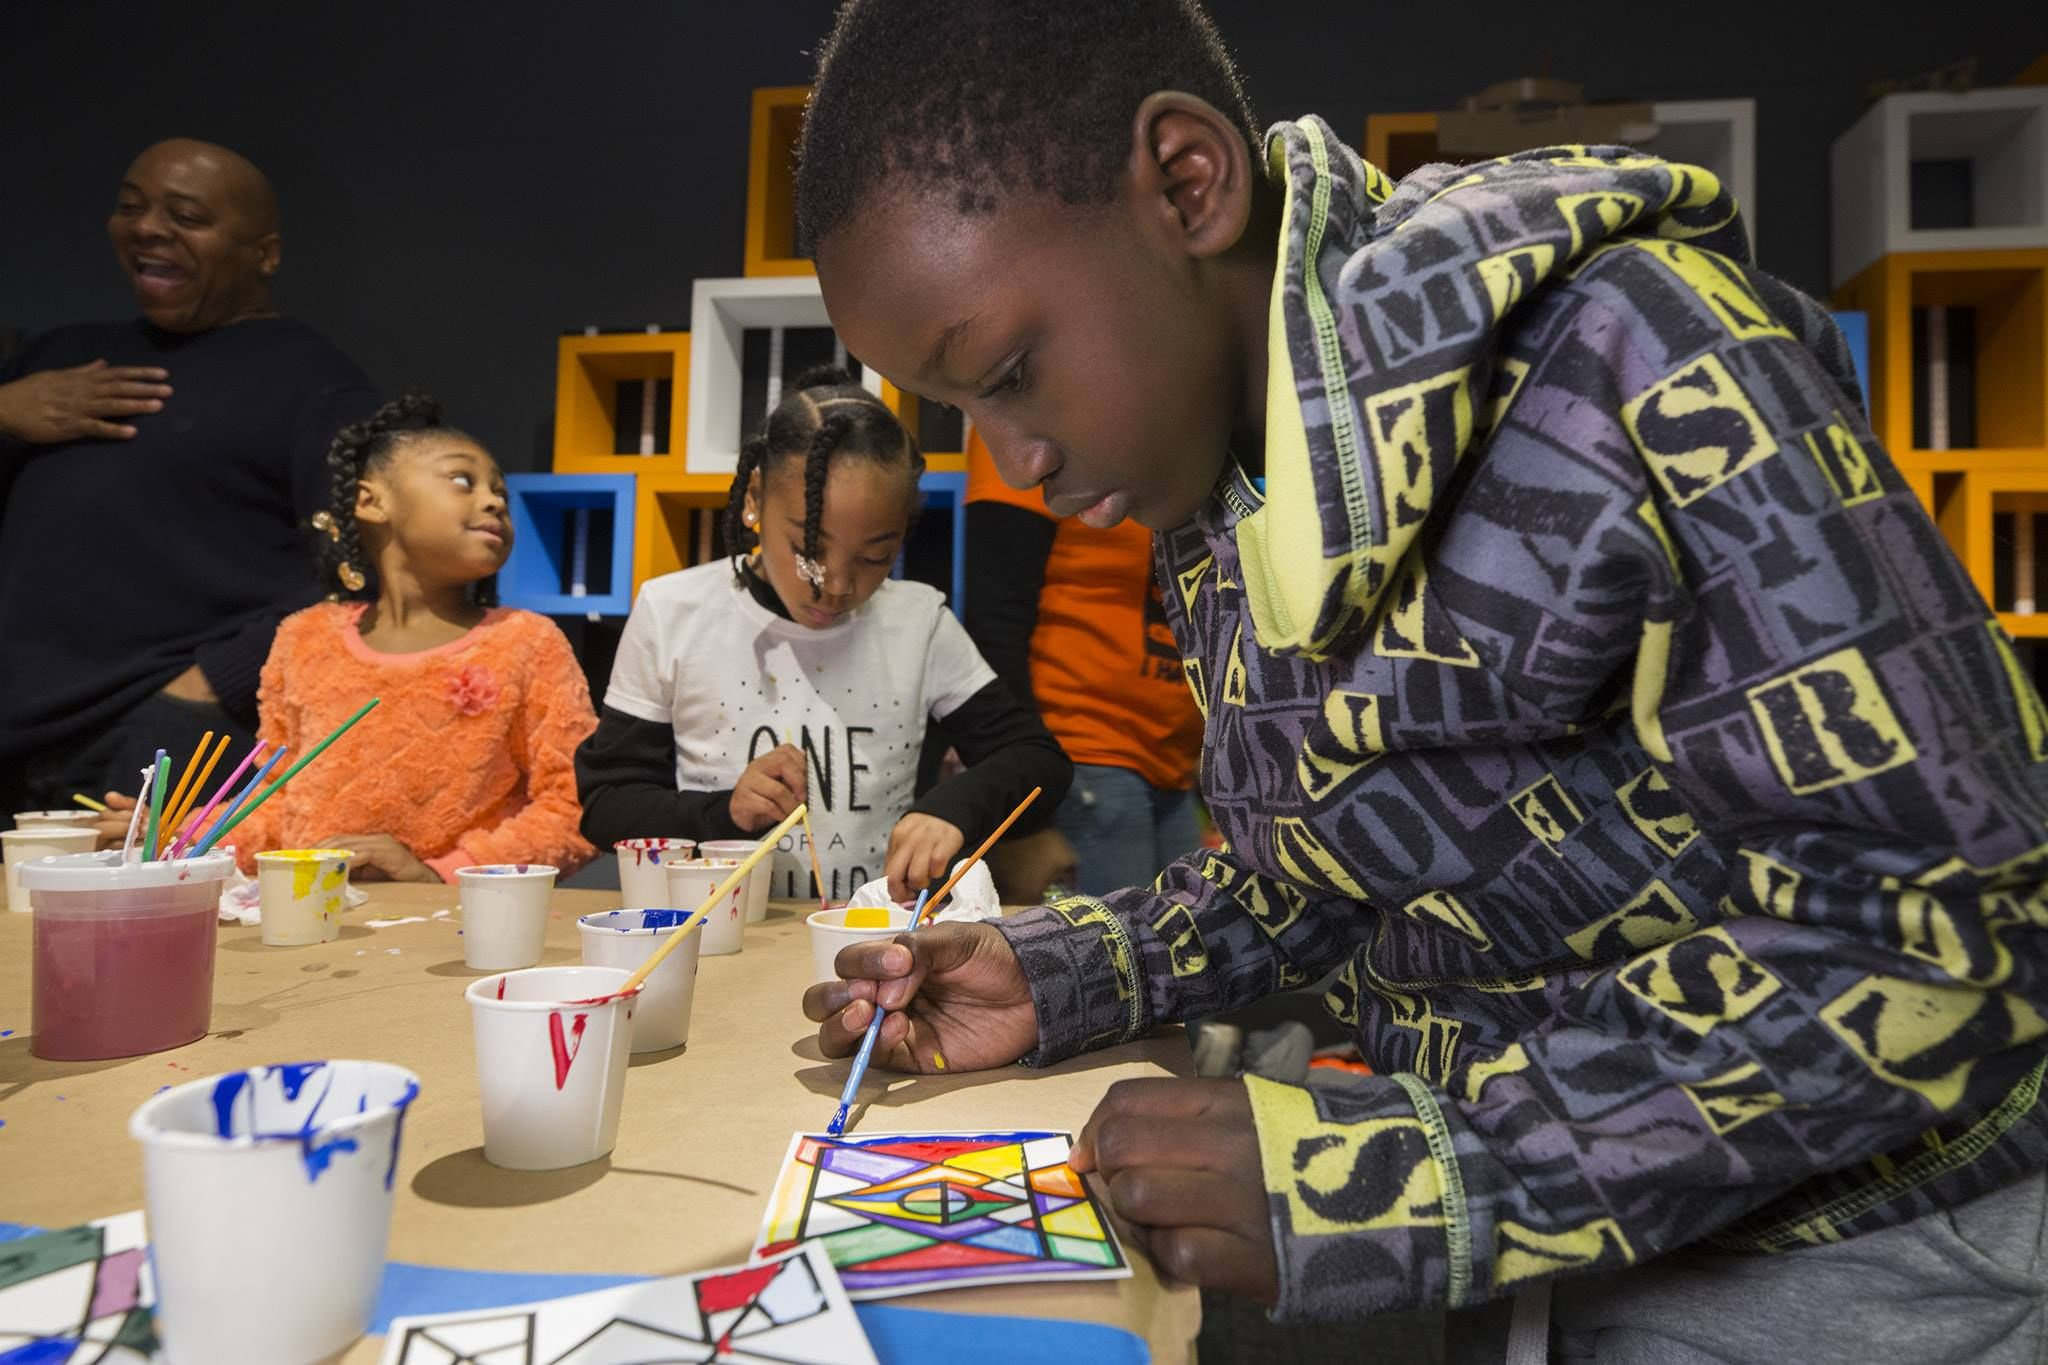 Kids working on art projects at Museum of Science and Industry, Chicago